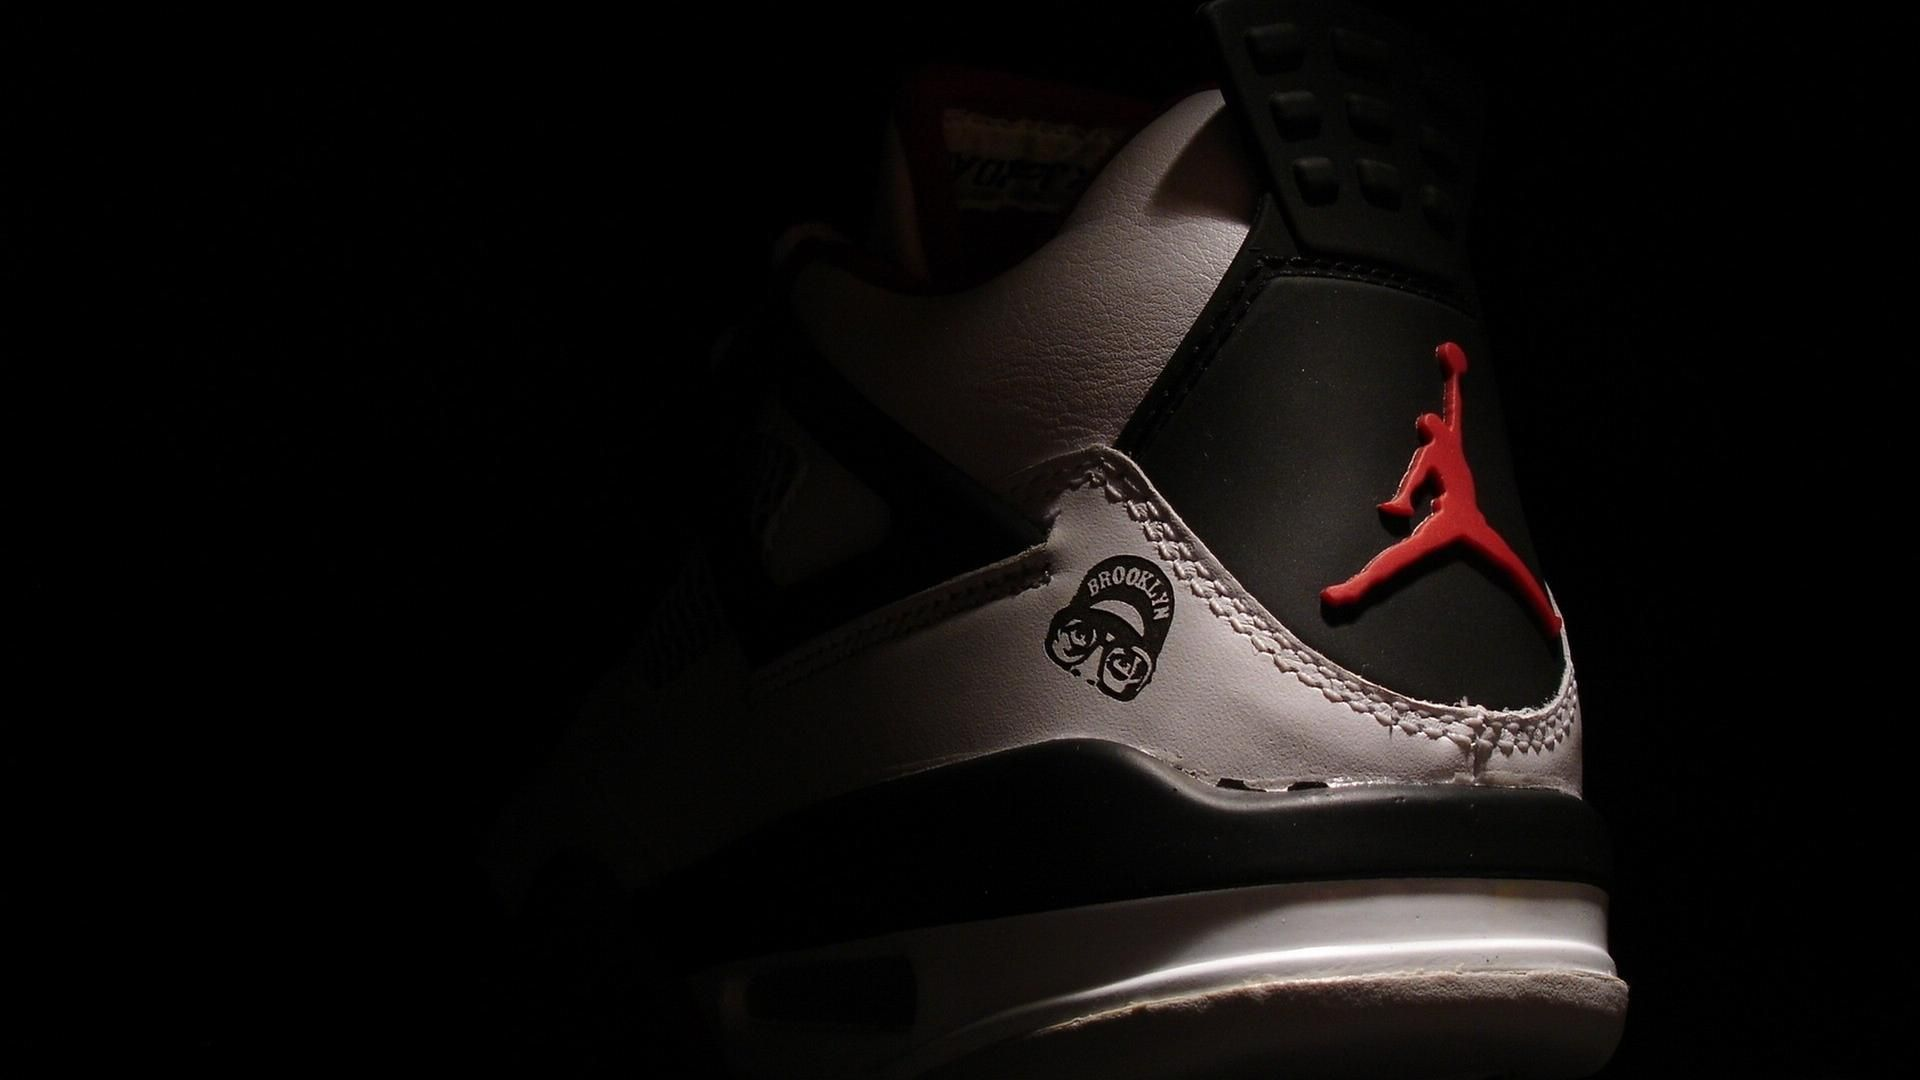 Jersey And Jordan Shoes Wallpapers On